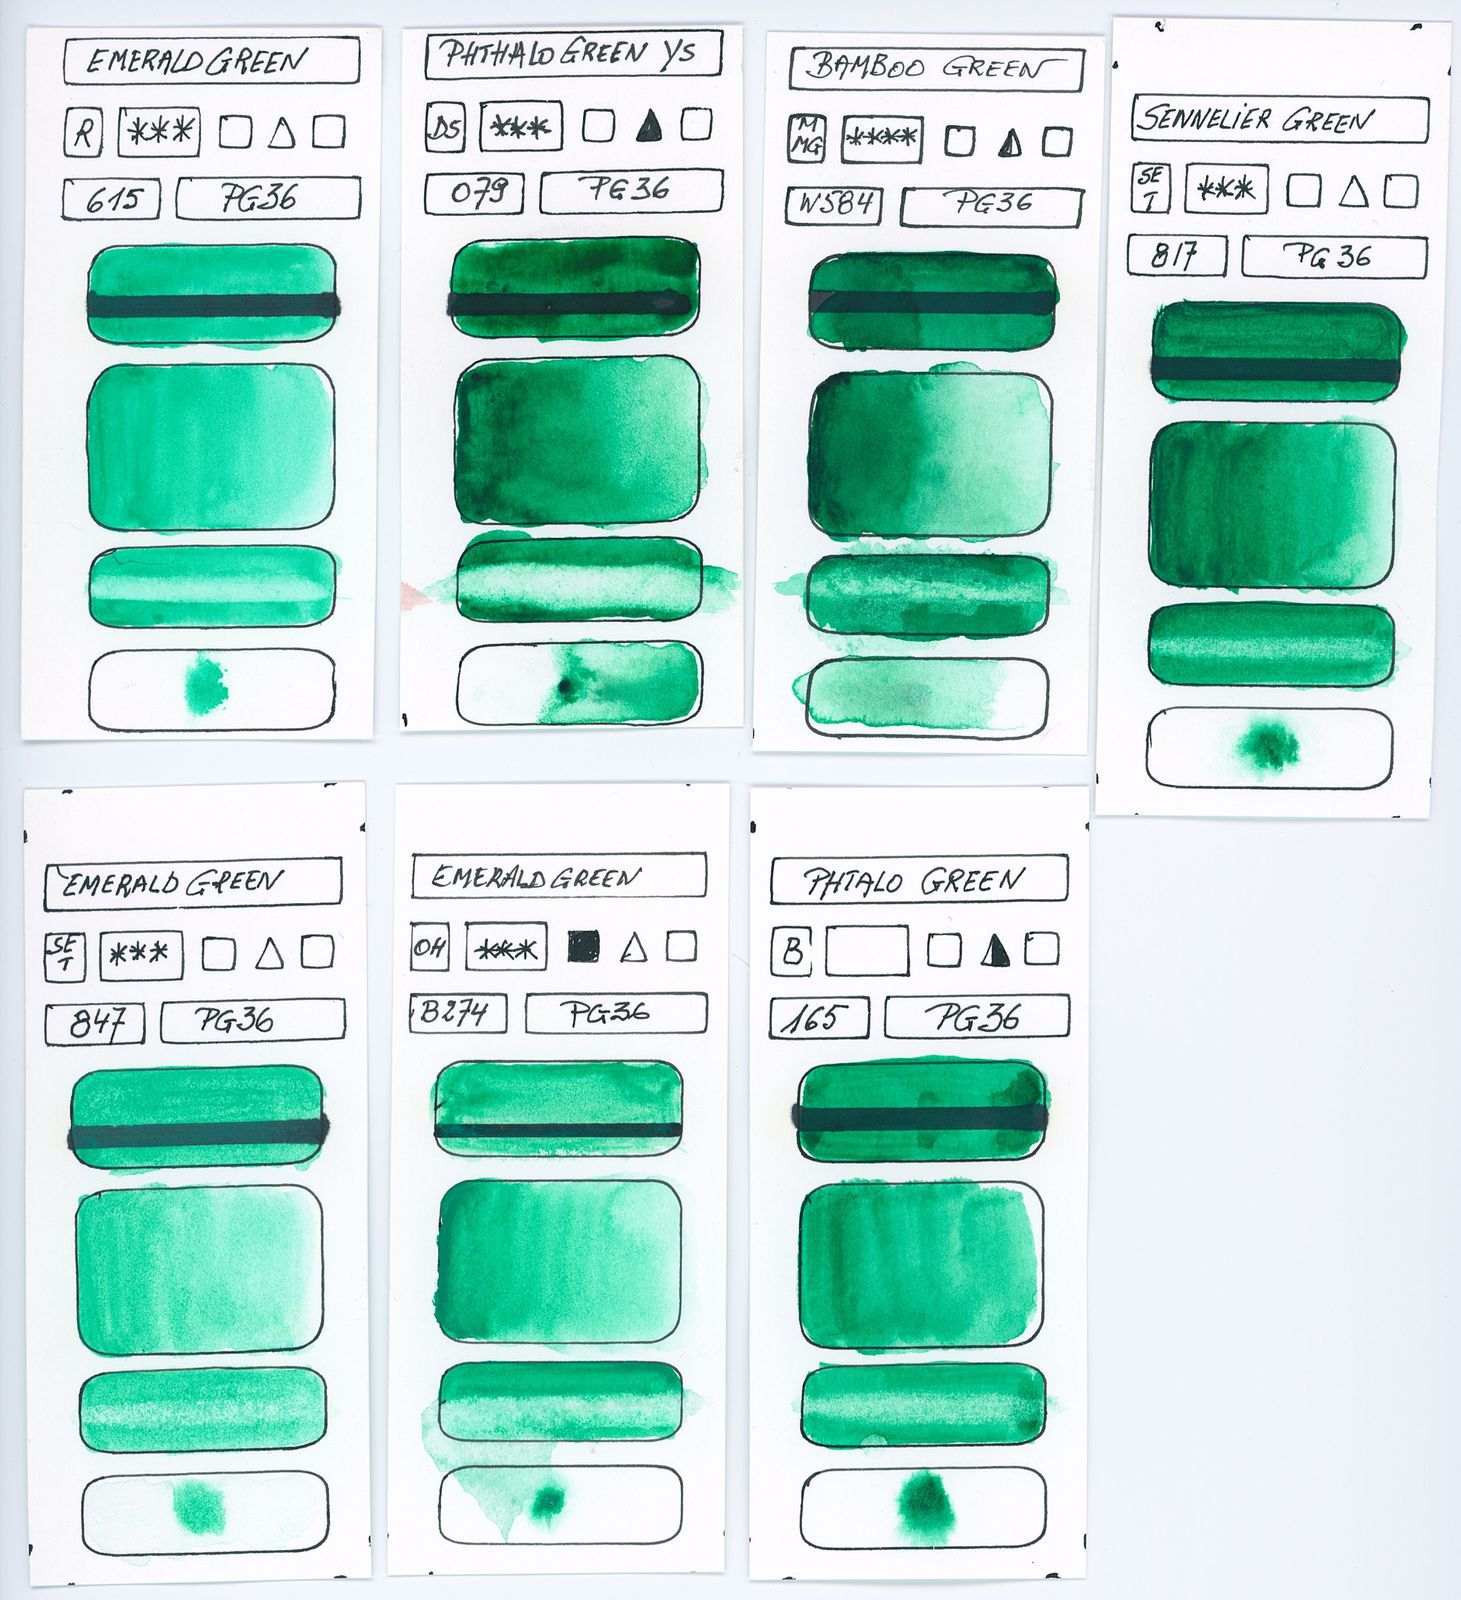 Swatches of Green watercolor paints from different manufacturer made with pigment P36